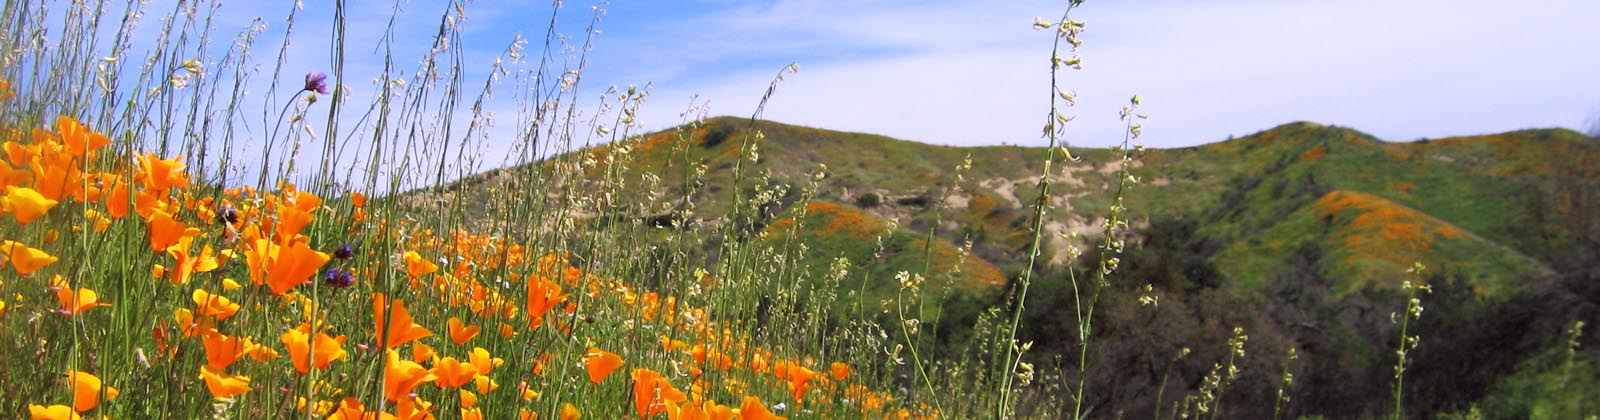 CANCELLED: Wildflowers & Pollinators: Walking Tour of the Native Seed Farm